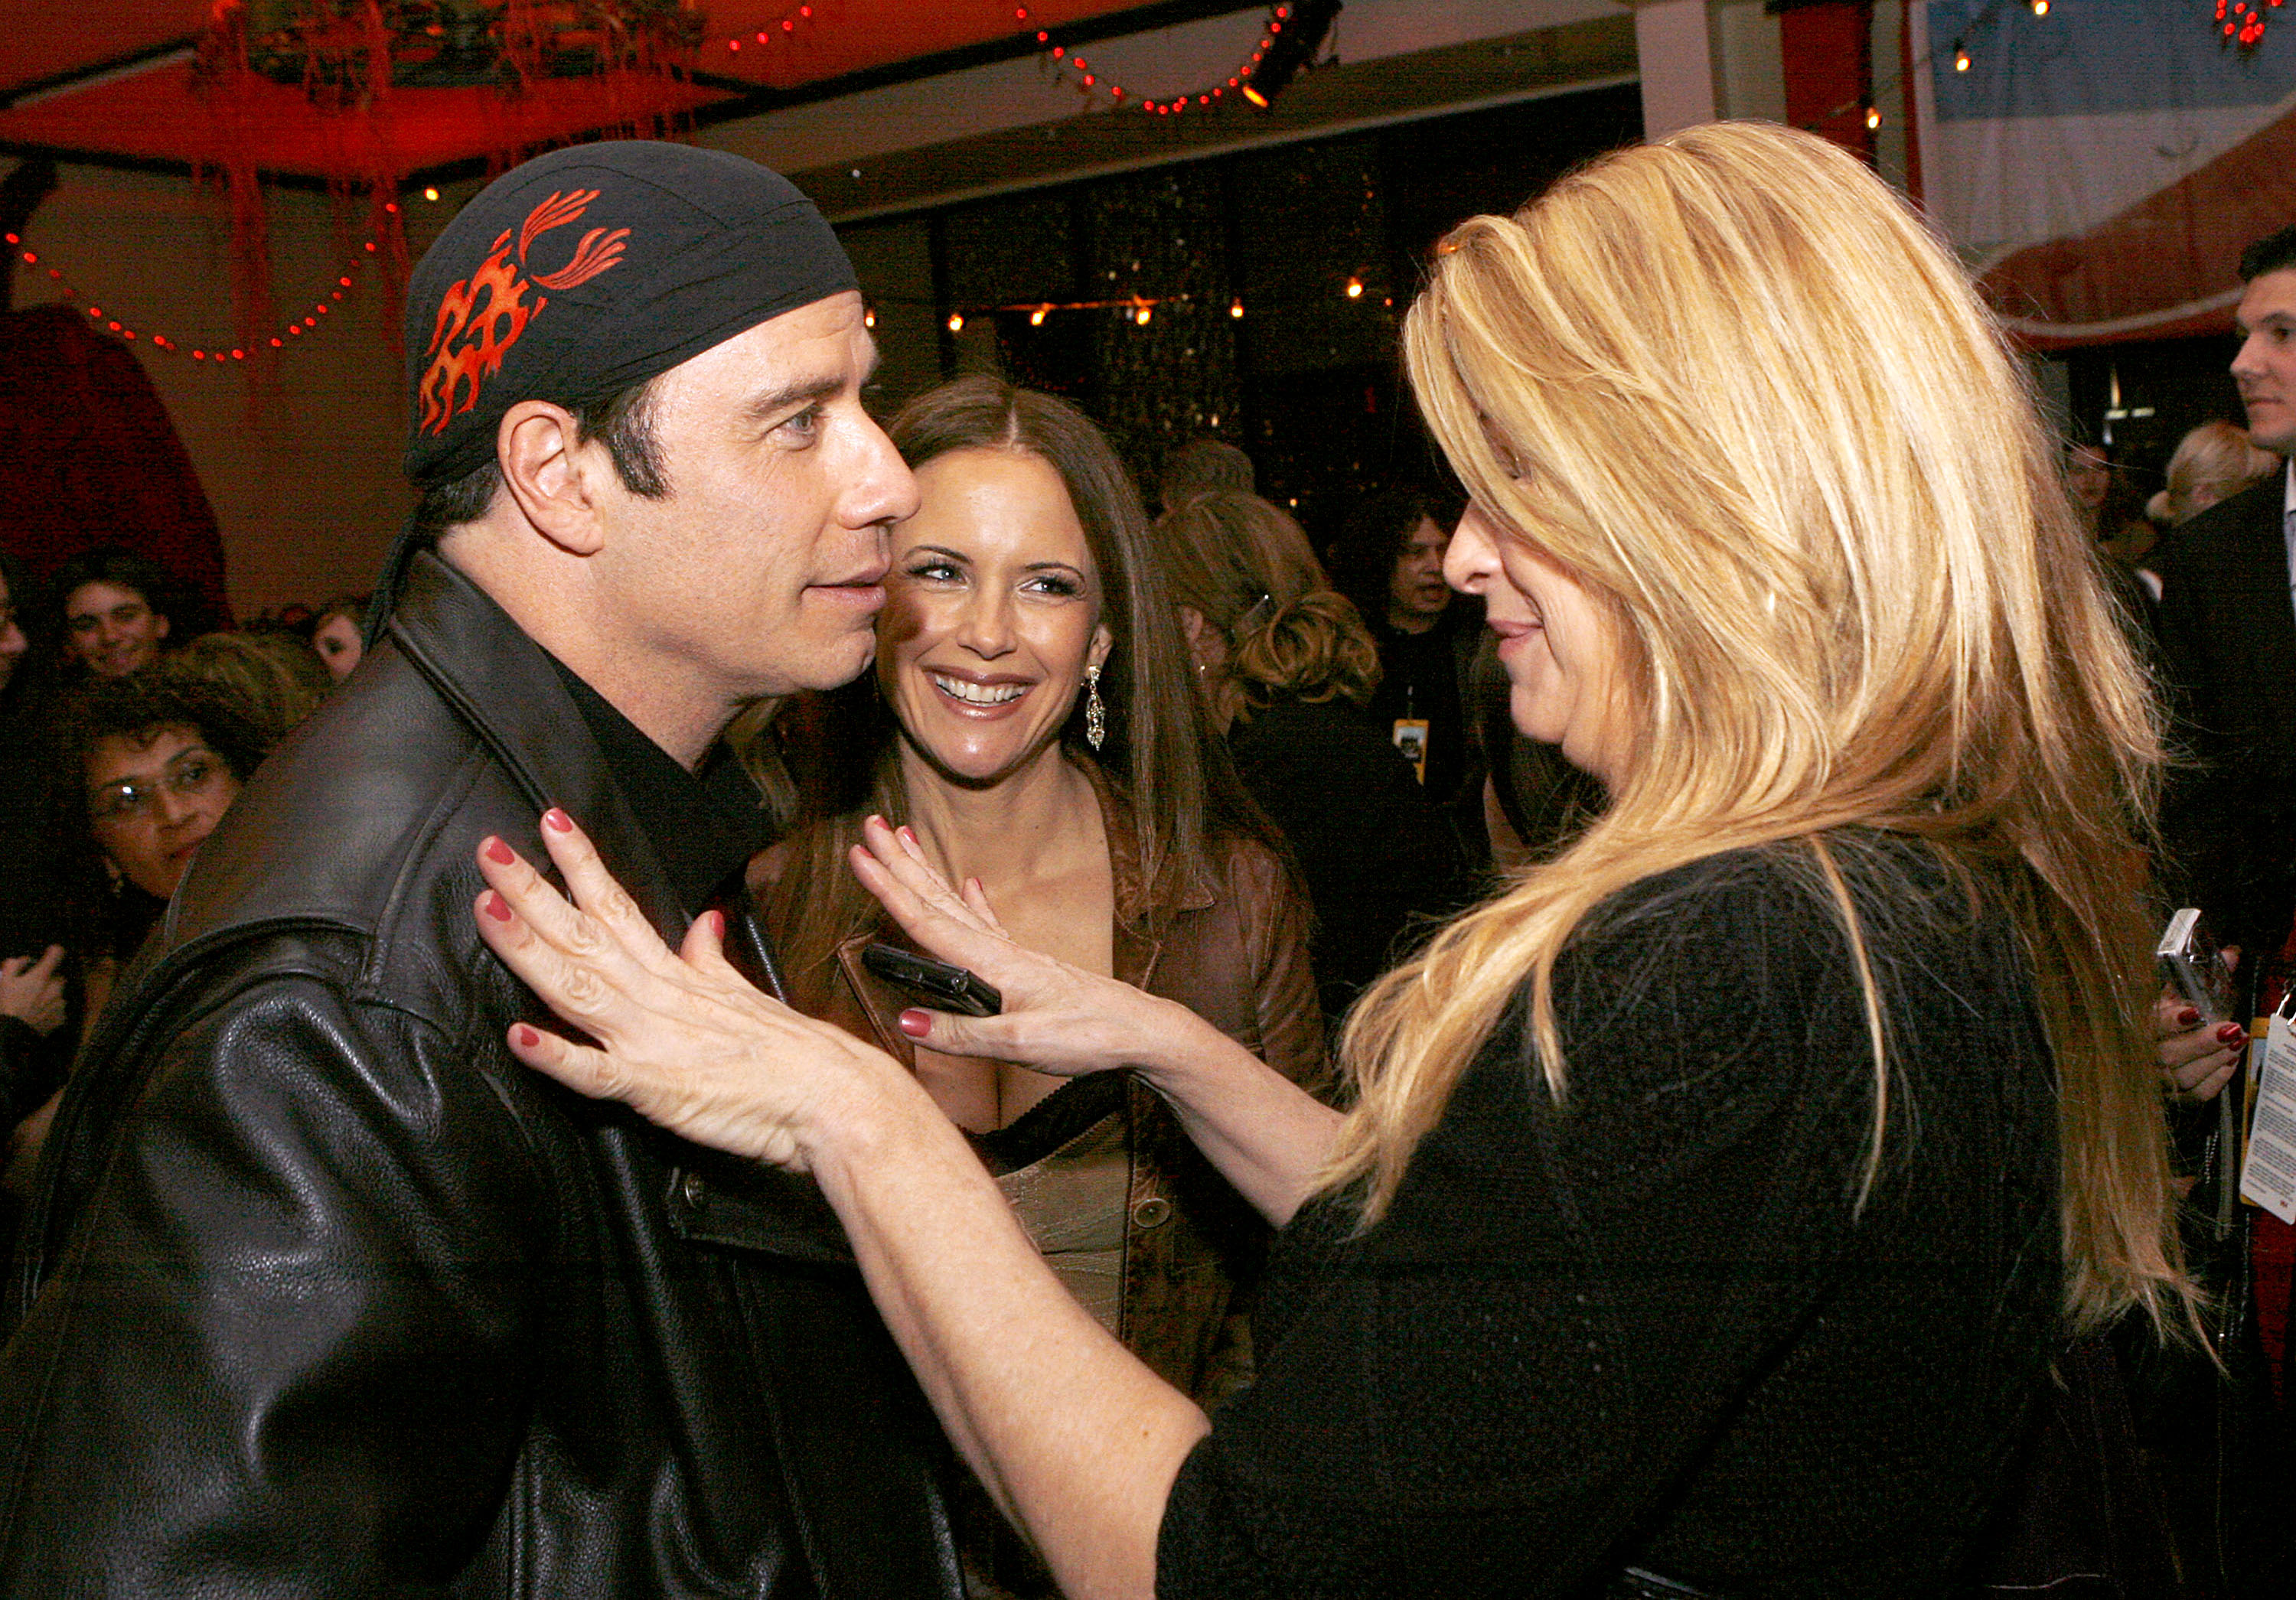 Actors John Travolta, Kelly Preston and Kirstie Alley talk at the afterparty for the premiere of Touchstone Picture's 'Wild Hogs' at the Annex on February 27, 2007, in Los Angeles, California. (Getty)